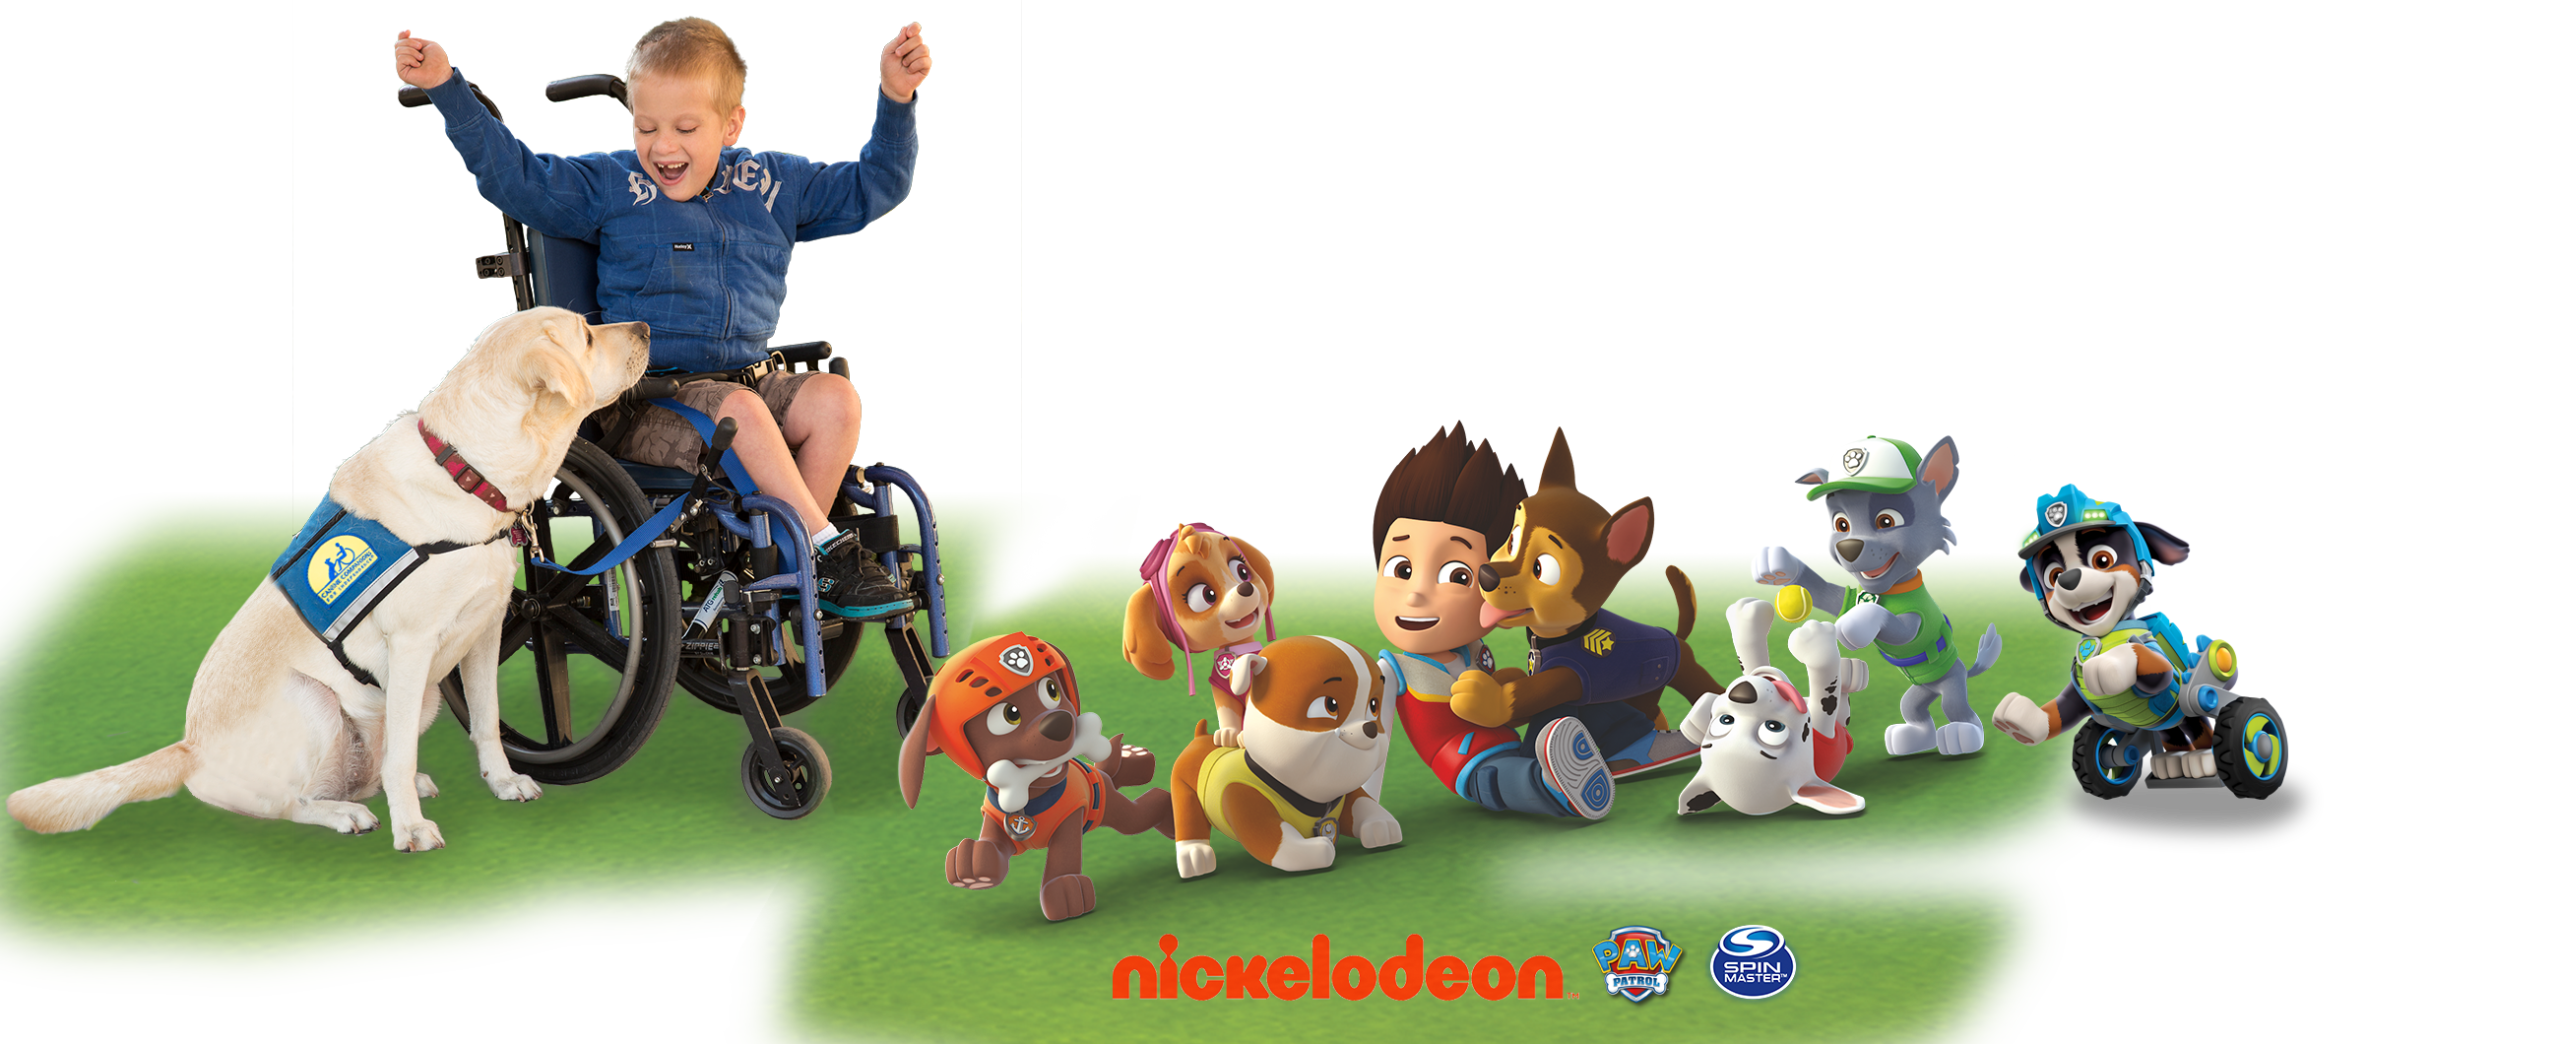 Canine Companions service dog, child and PawPatrol characters